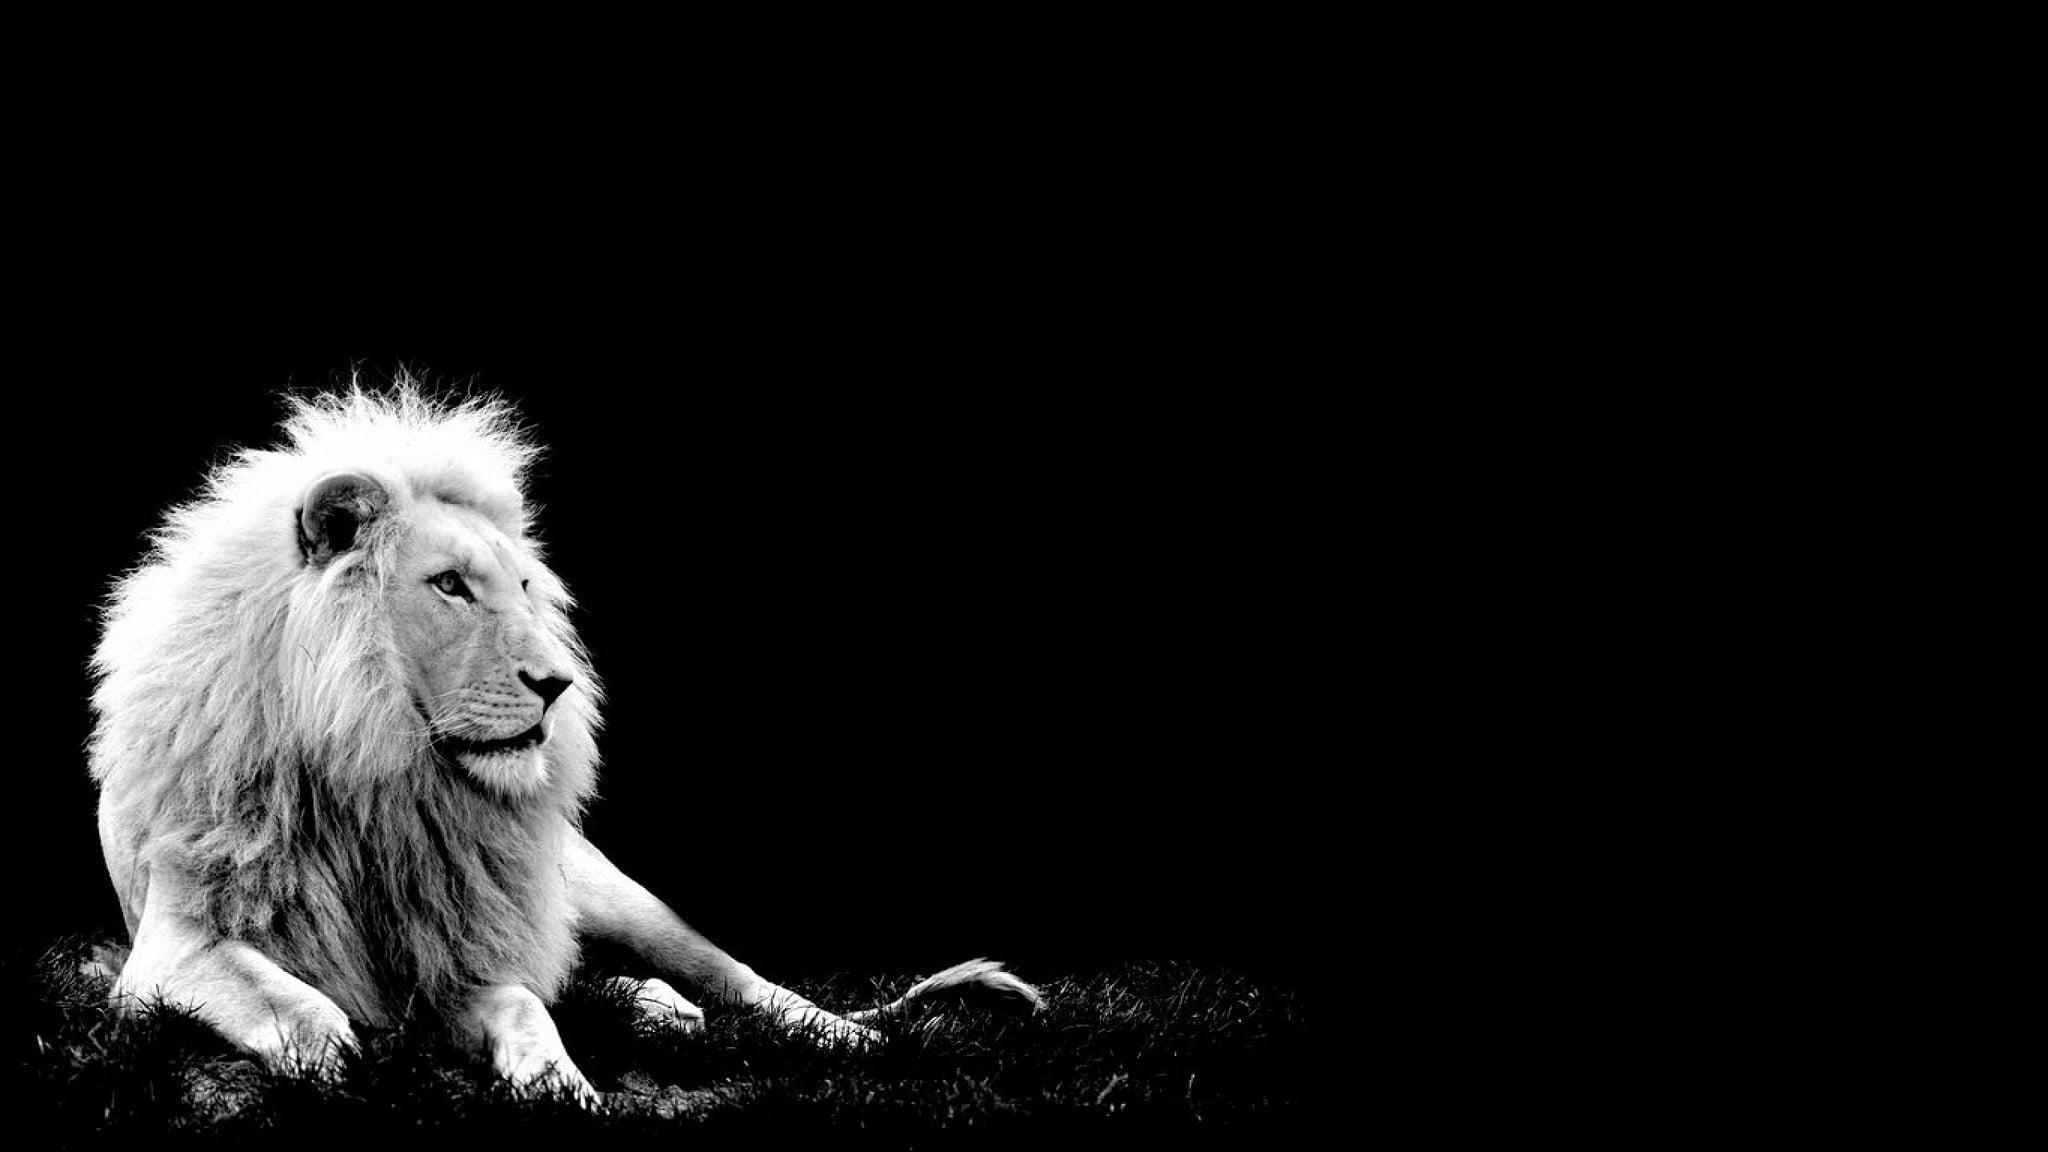 White lions wallpaper hd